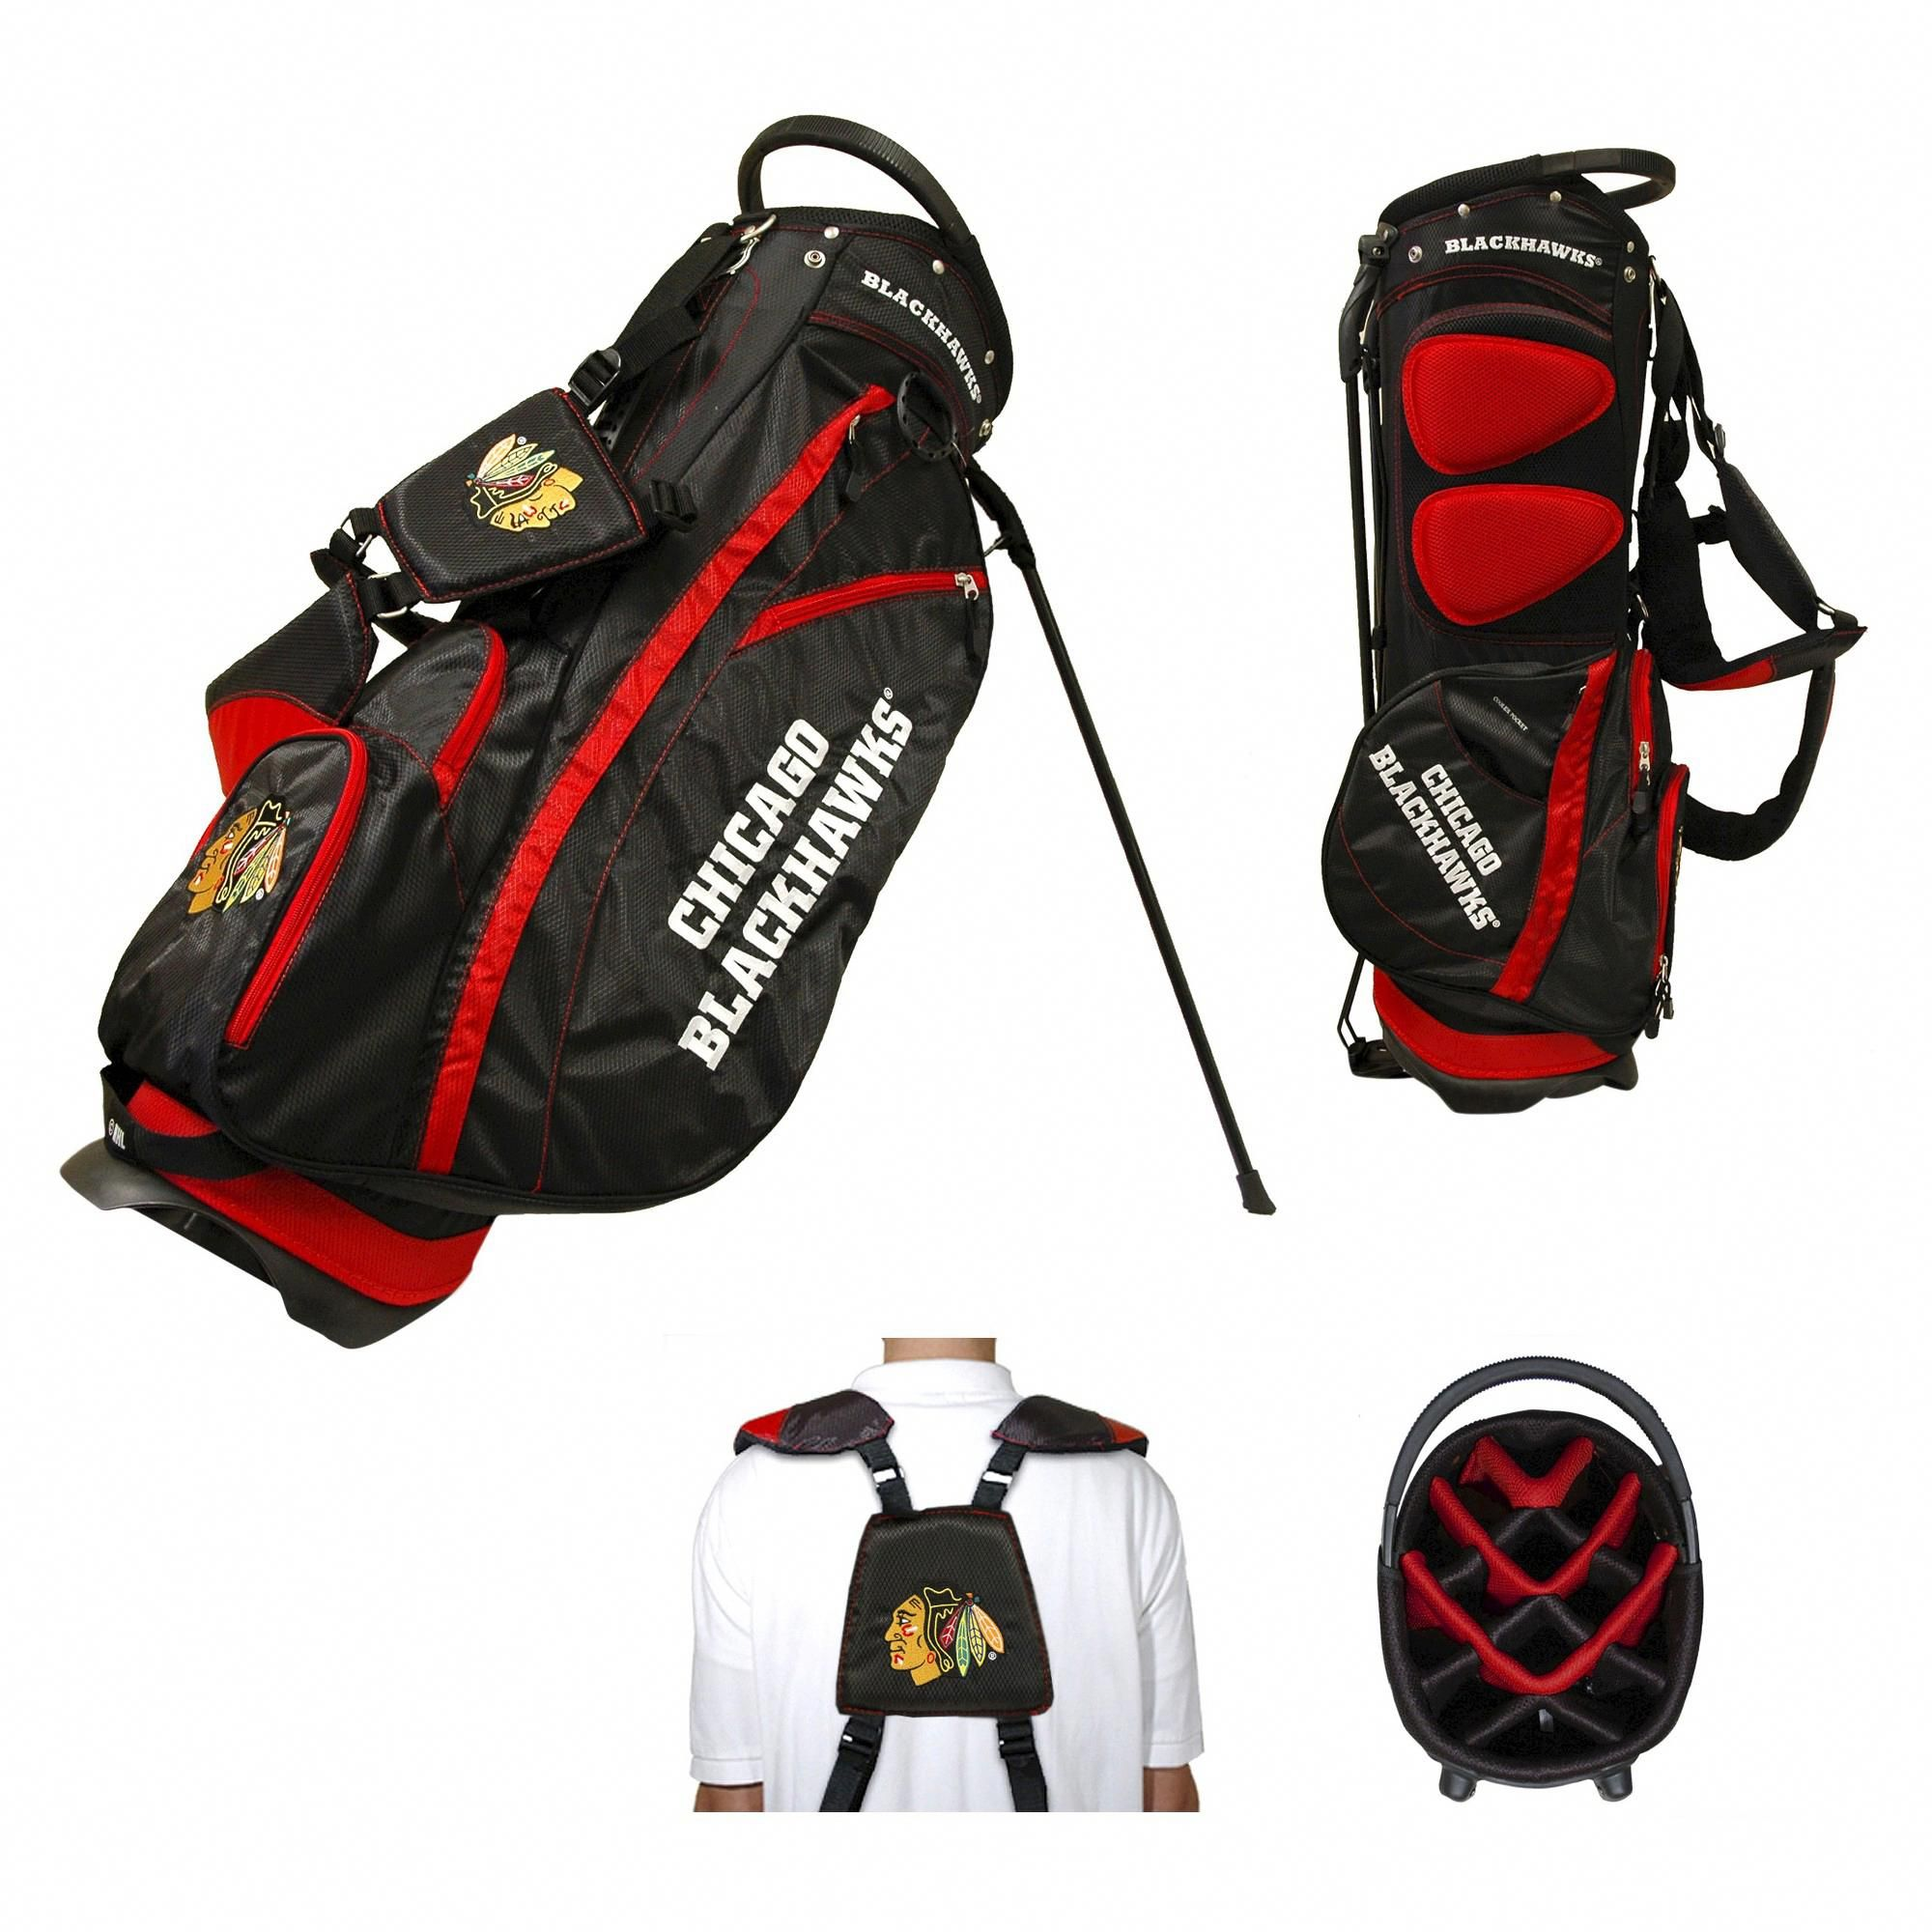 Top Golf Tips GolfSwingTipsIrons GolfInDubai Golf bags